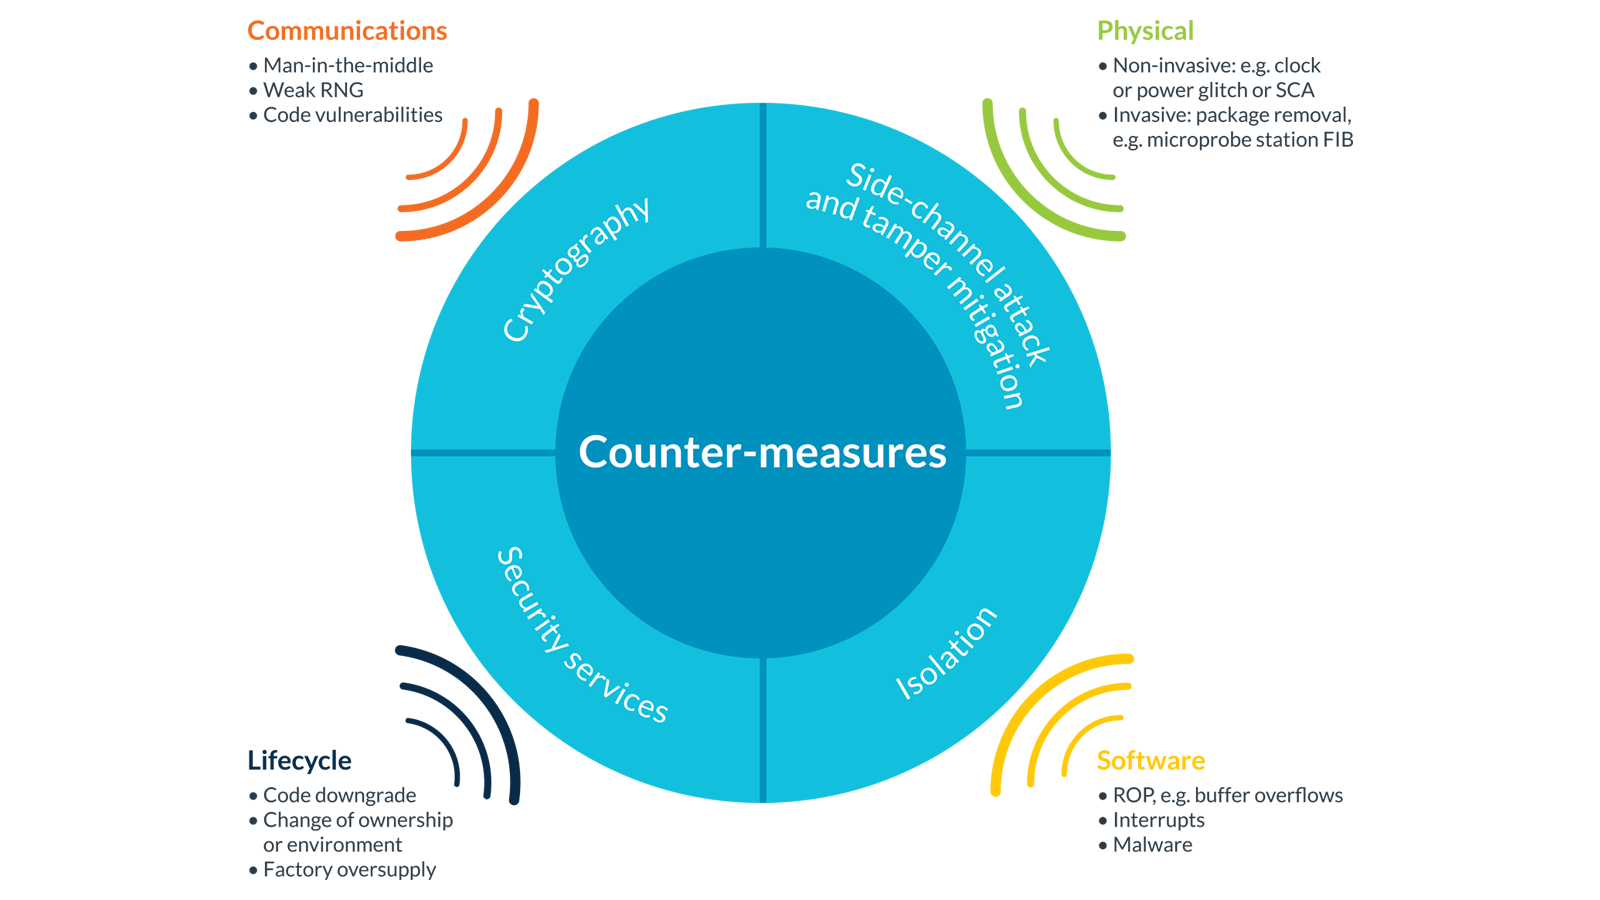 Security threats and appropriate counter-measures  - Counter 2D00 measures - Arm launches first set of Threat Models for PSA: IoT Security should start with analysis